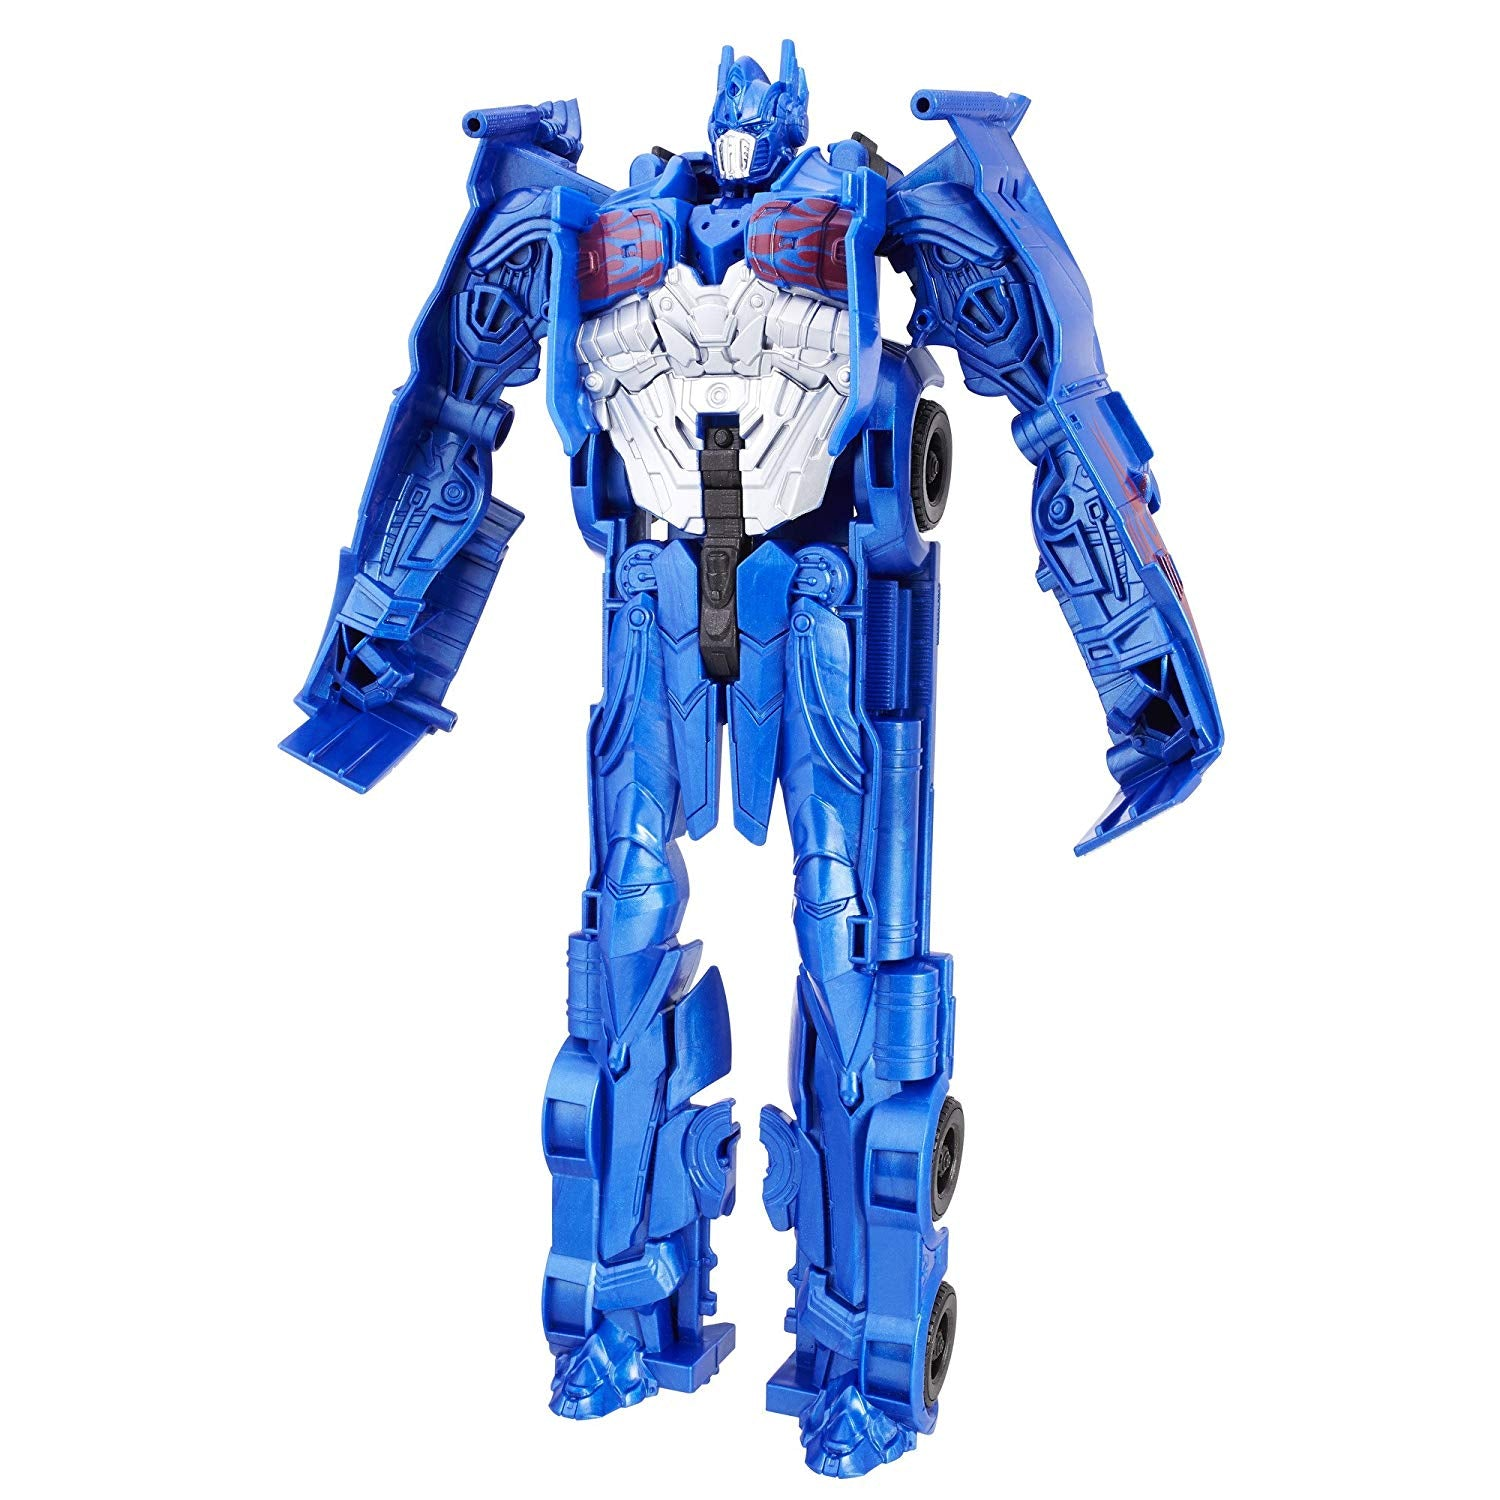 Transformers The Last Knight: Titan Changer Optimus Prime Figure by Hasbro